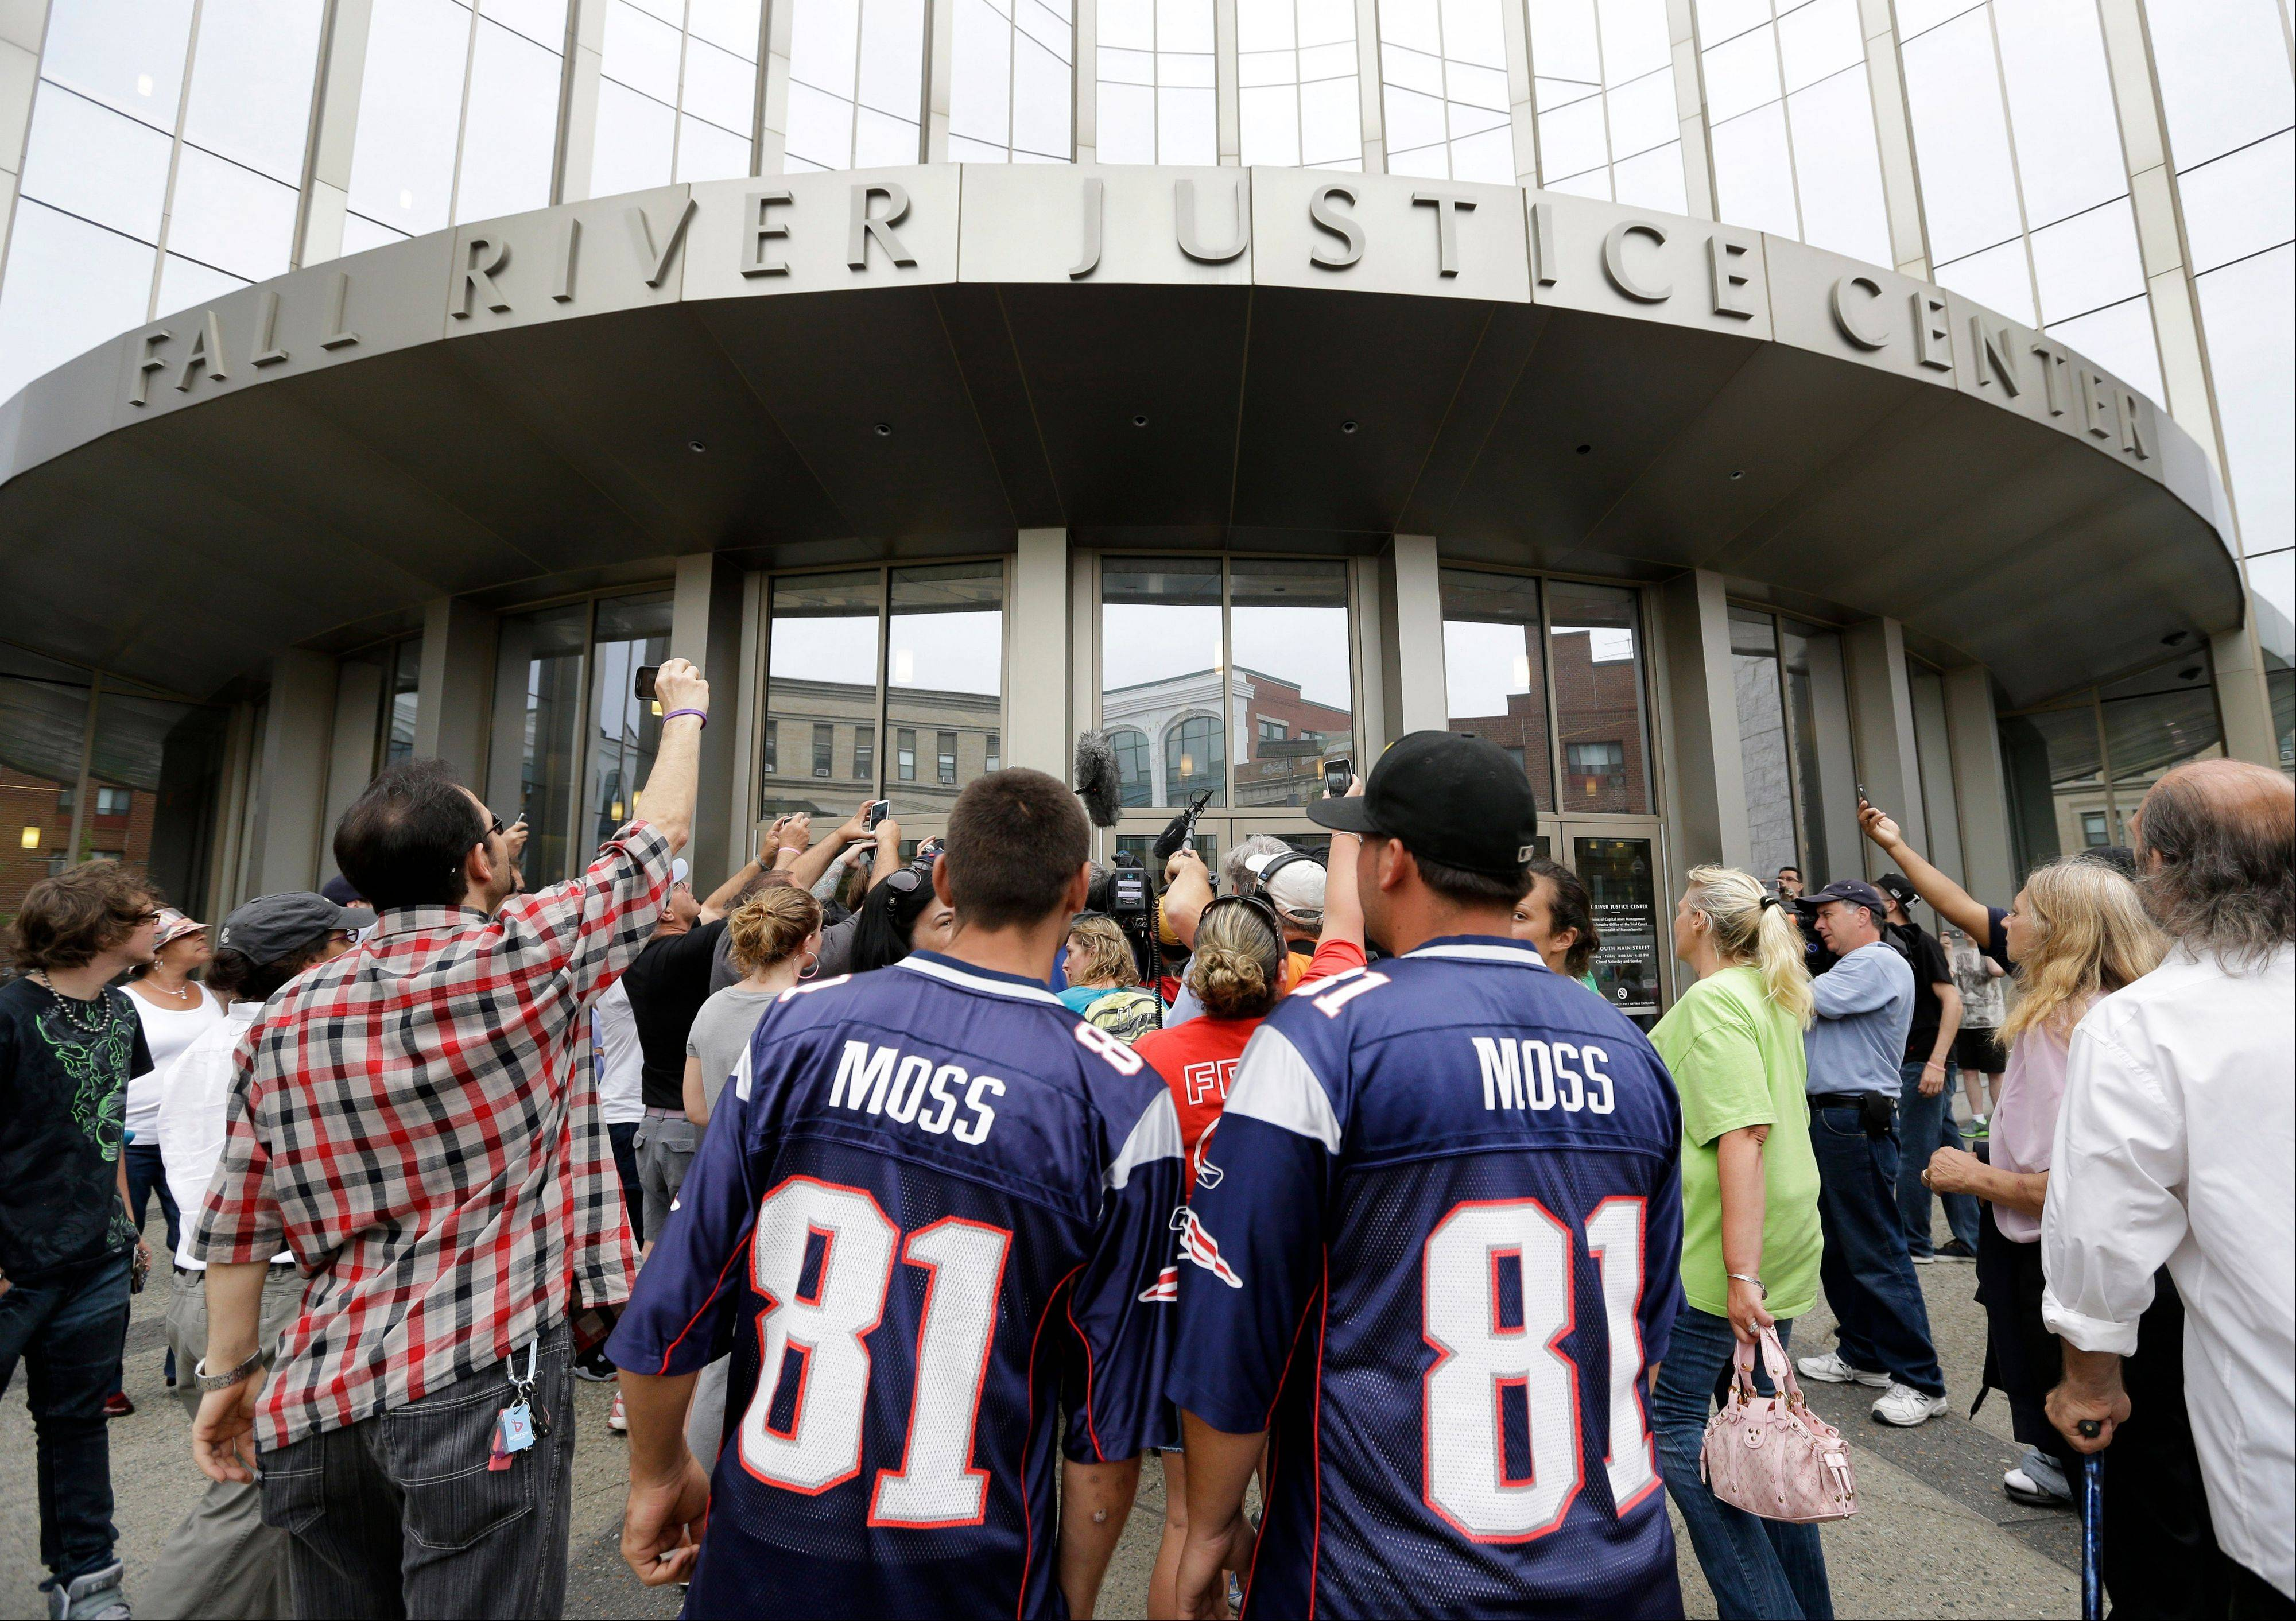 Interested bystanders and media members crowd around the entrance to the Fall River Justice Center after a bail hearing was held for former New England Patriots football player Aaron Hernandez in Fall River Superior Court Thursday, June 27, 2013 in Fall River, Mass. Hernandez, charged with murdering Odin Lloyd, a 27-year-old semipro football player, was denied bail.